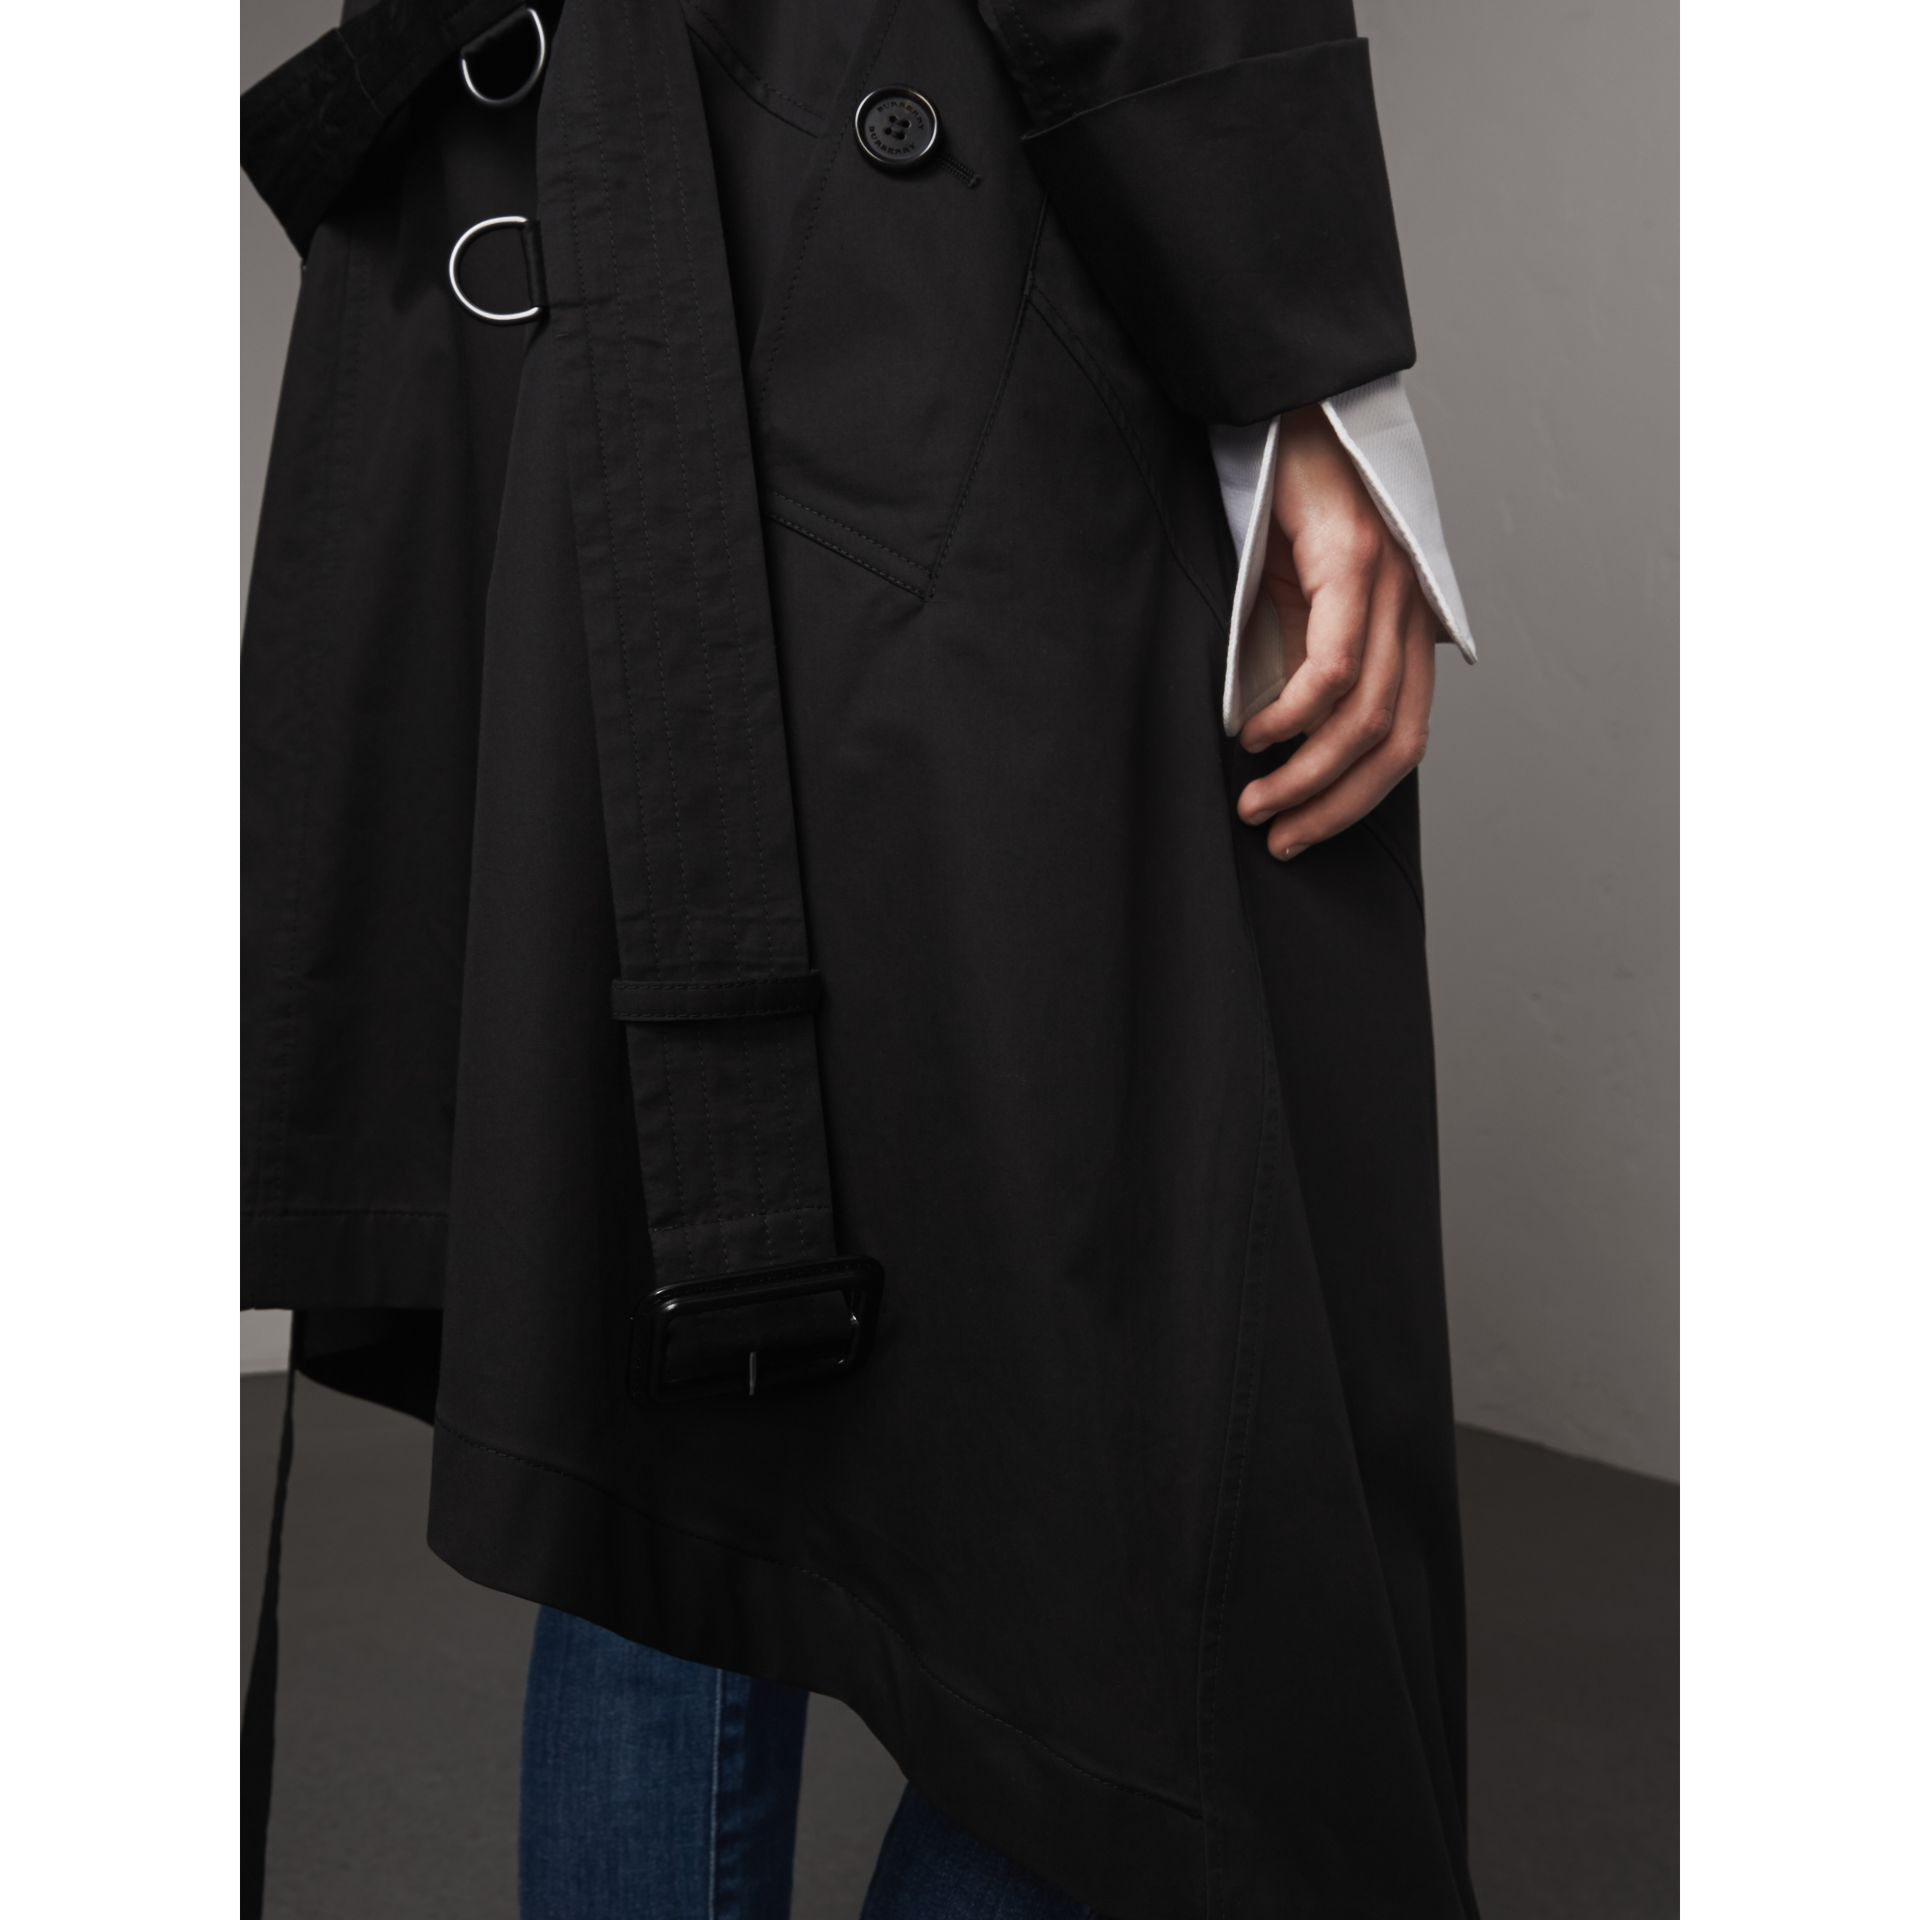 Cotton Asymmetric Trench Coat in Black - Women | Burberry Canada - gallery image 2